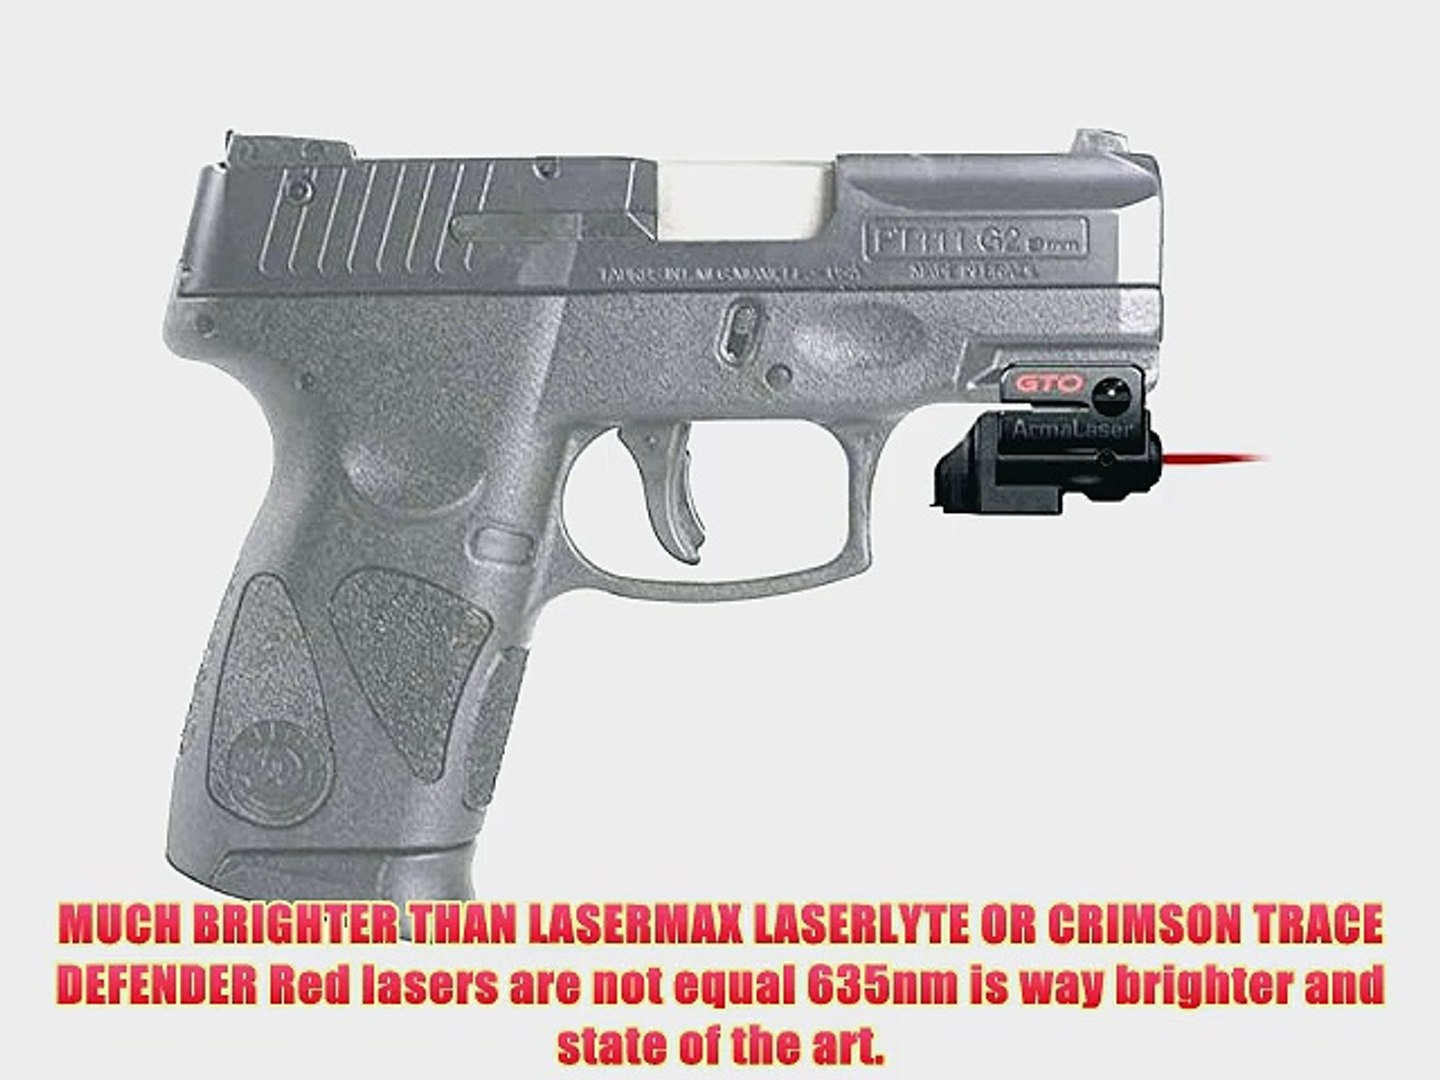 ArmaLaser GTO/FLX Red Laser Sight for Taurus PT111/PT140 G2 GTO/FLX23